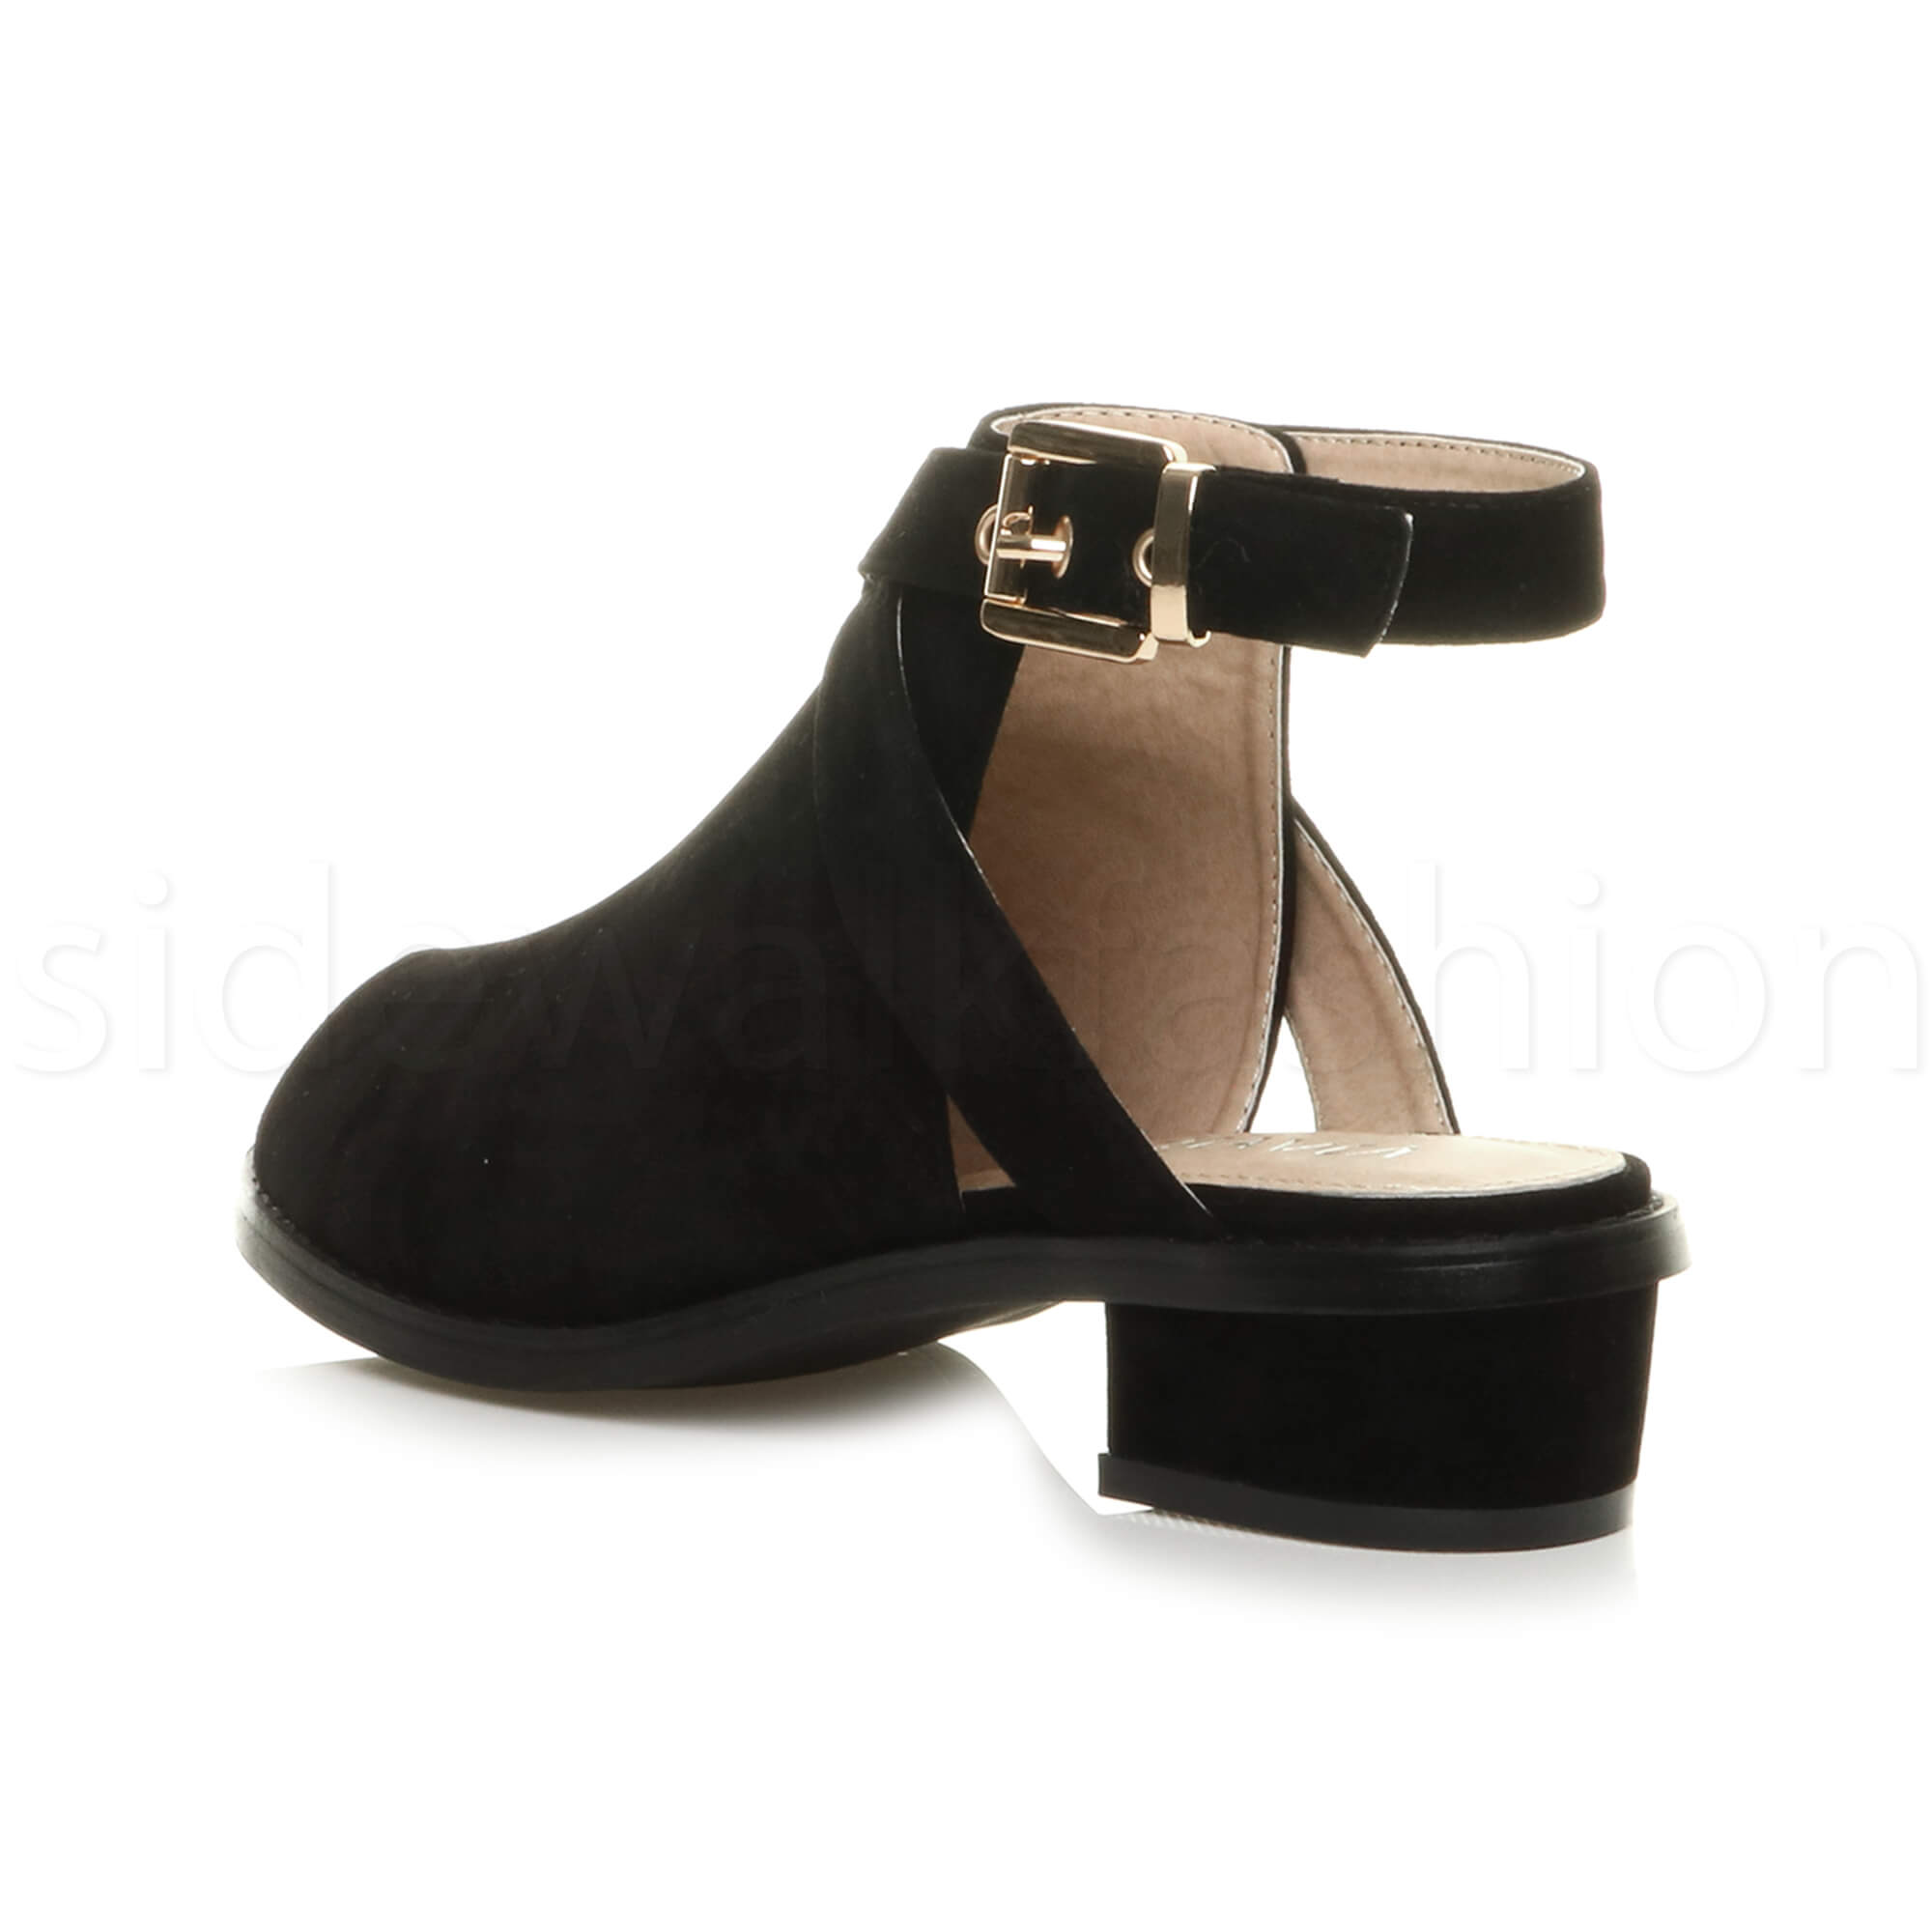 Womens-ladies-low-mid-heel-strap-open-backless-peep-toe-boots-sandals-shoes-size thumbnail 12